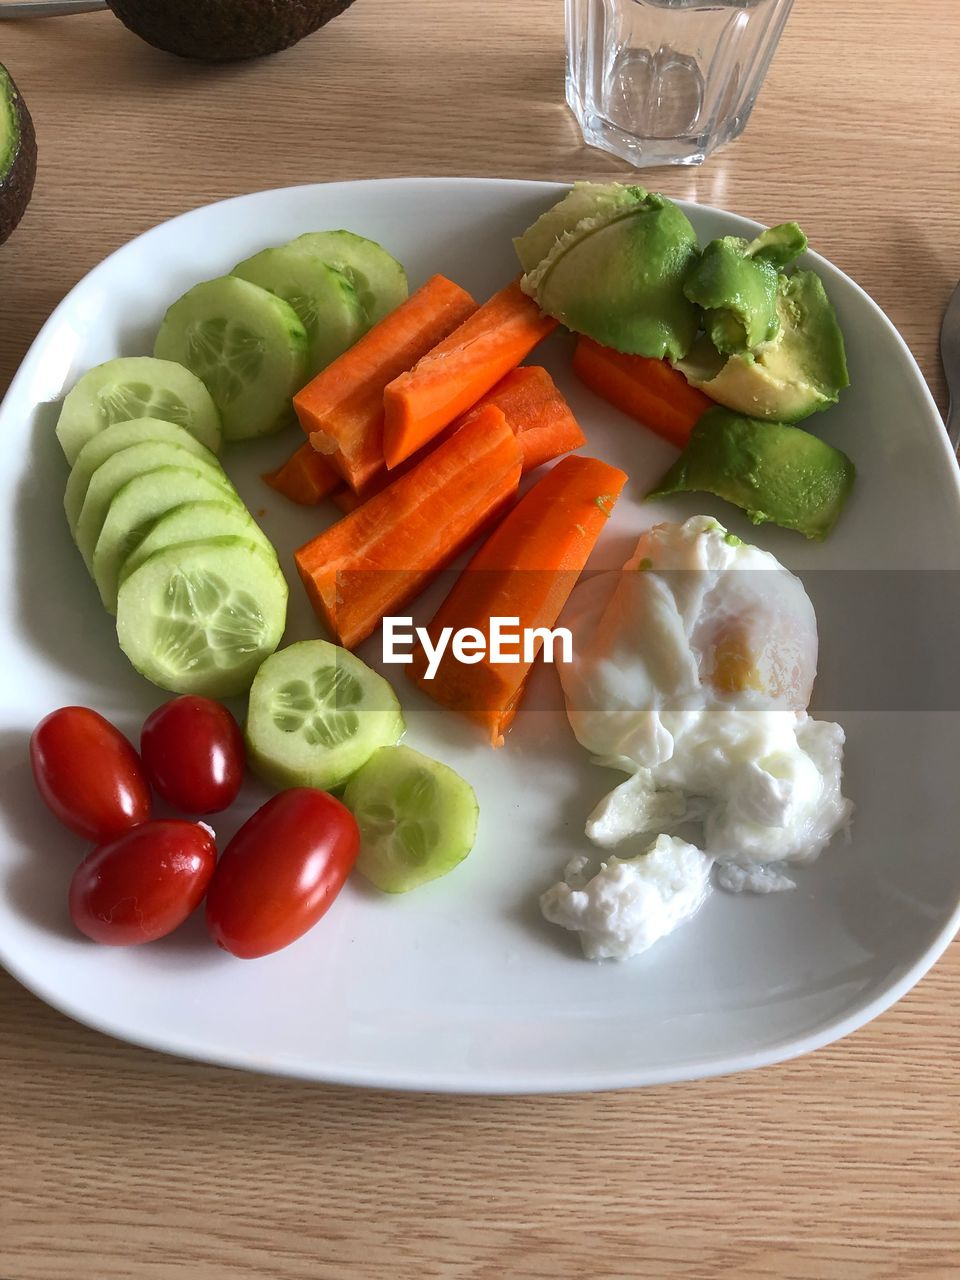 food and drink, food, freshness, healthy eating, table, plate, vegetable, ready-to-eat, wellbeing, indoors, fruit, still life, tomato, no people, cucumber, close-up, high angle view, carrot, salad, glass, chopped, vegetarian food, temptation